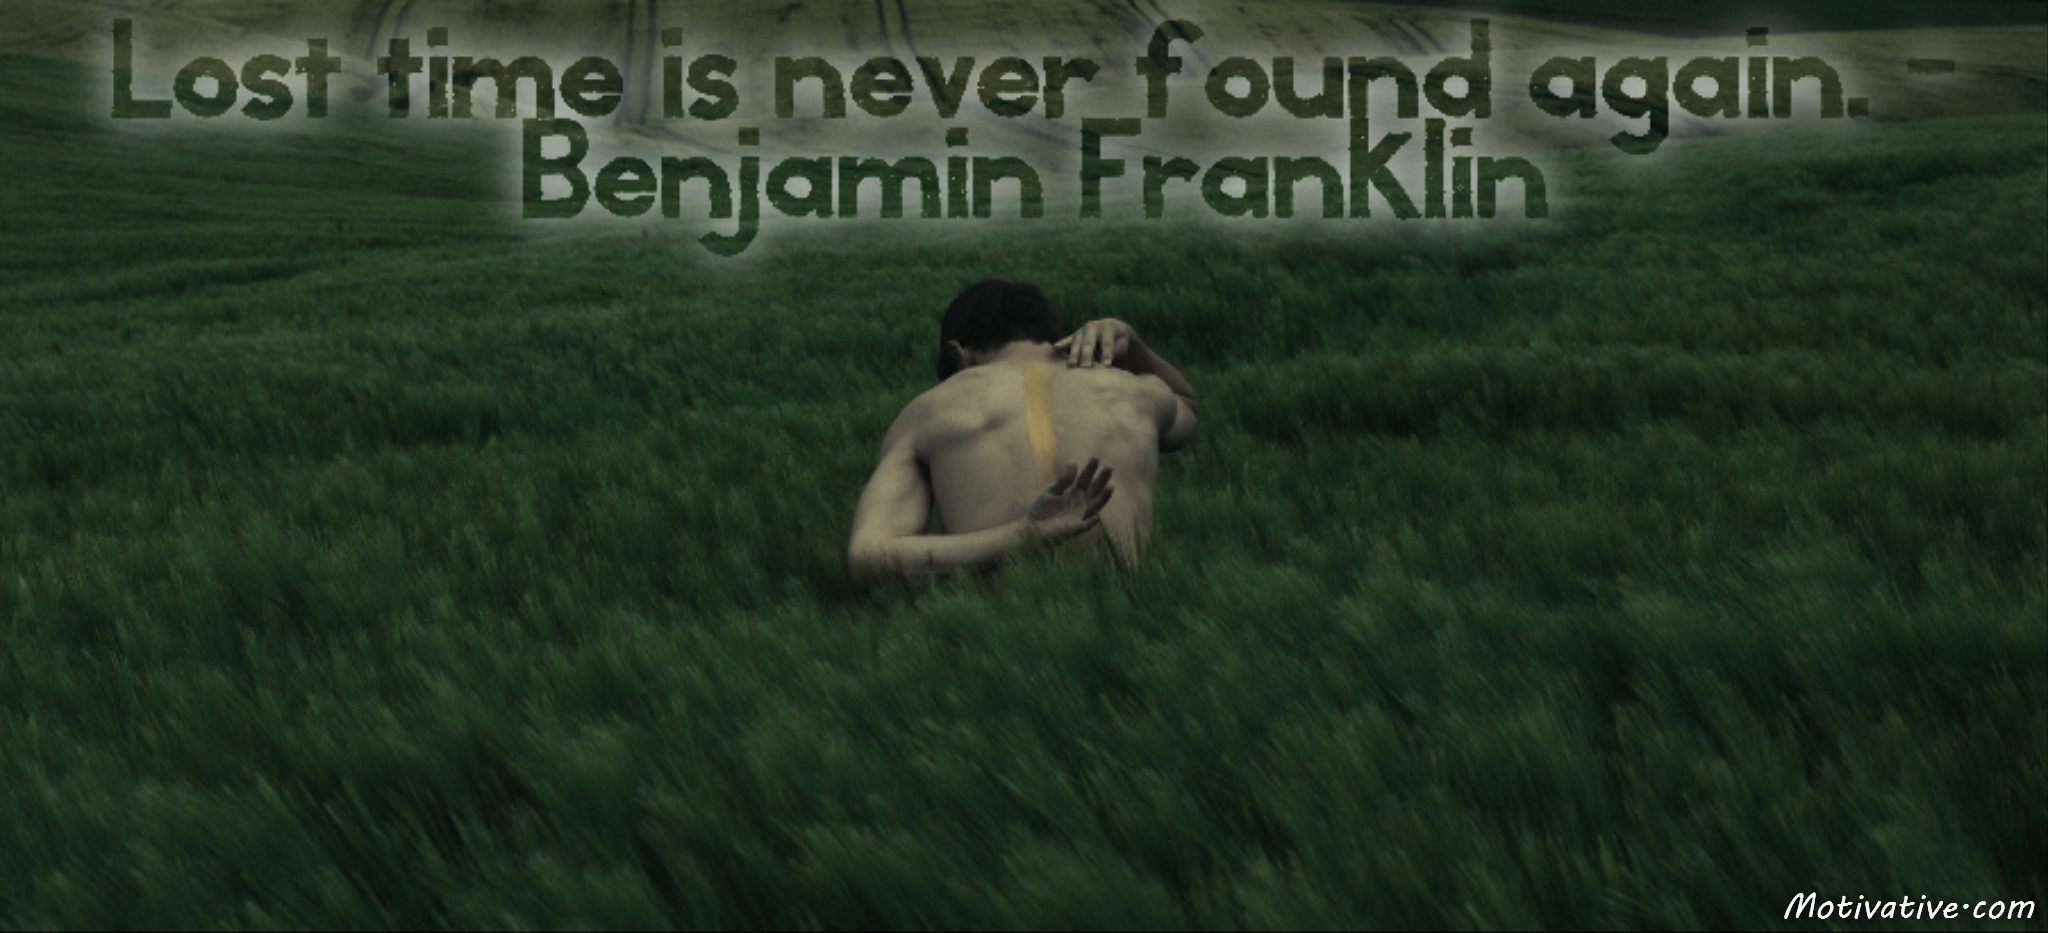 Lost time is never found again. – Benjamin Franklin